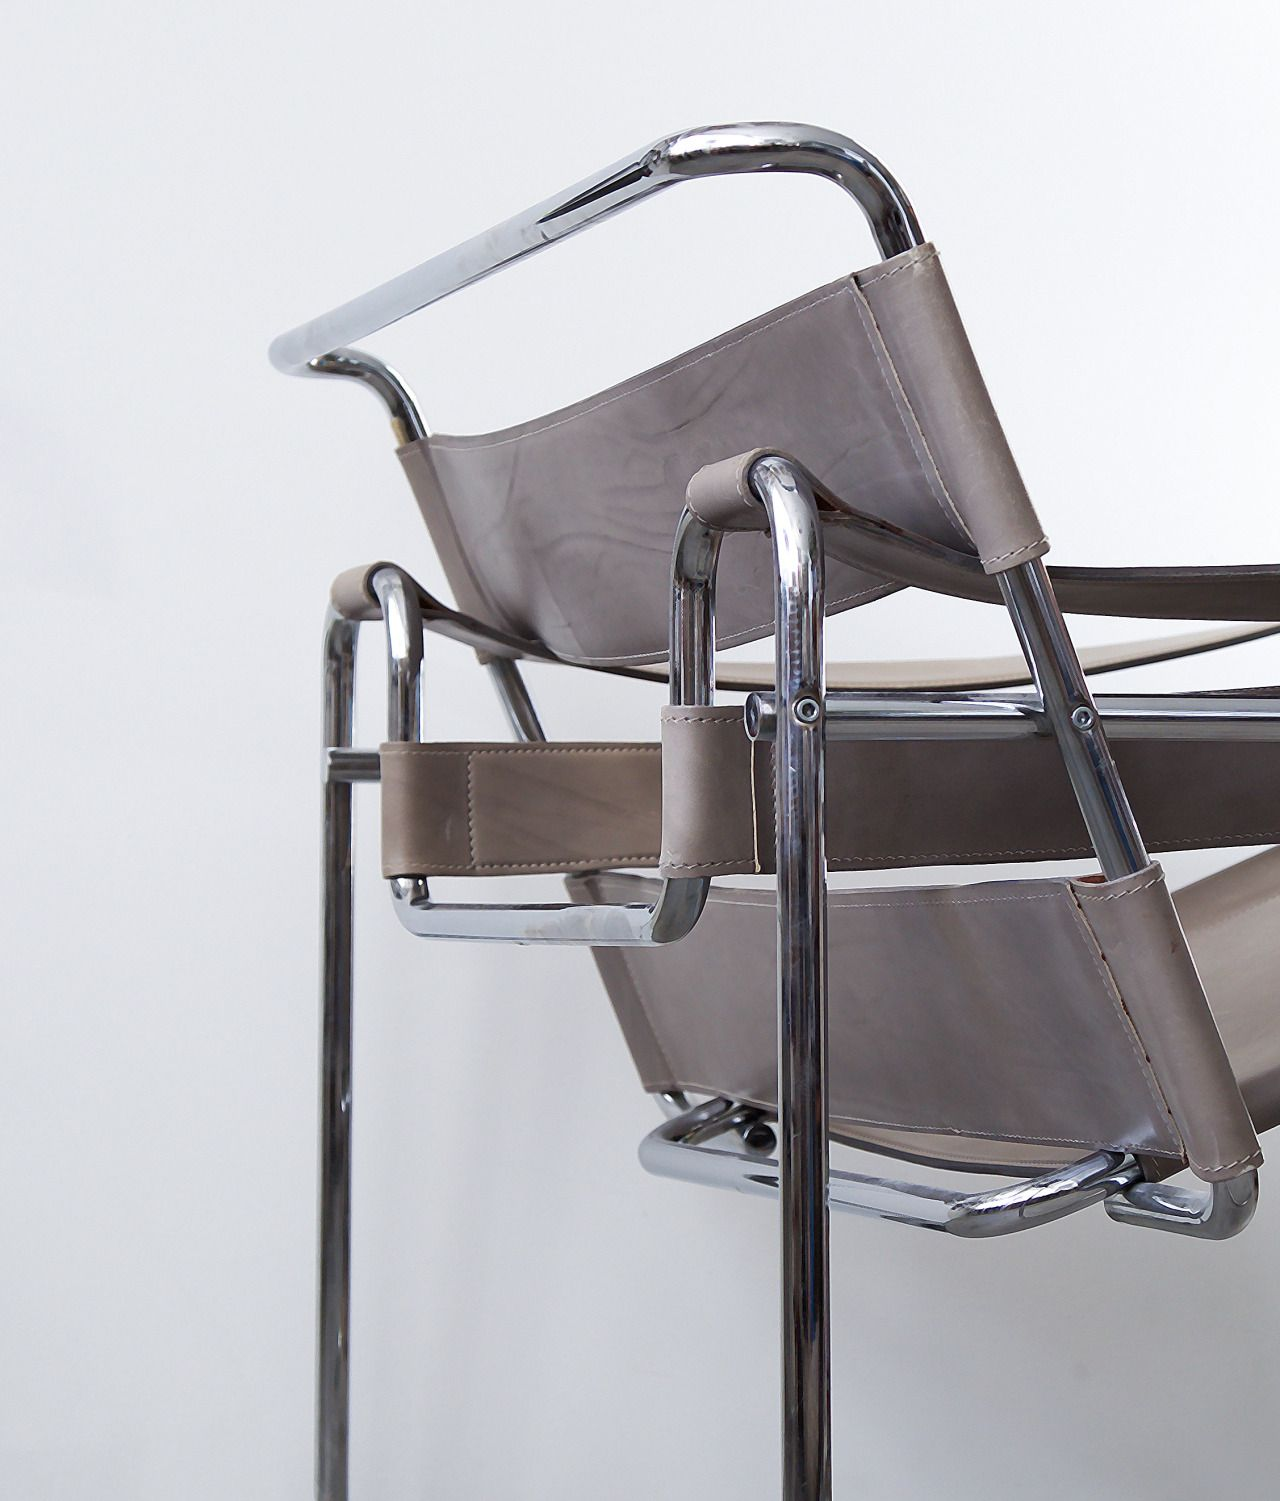 MARCEL BREUER, Model B3Chair, also known as the Wassily